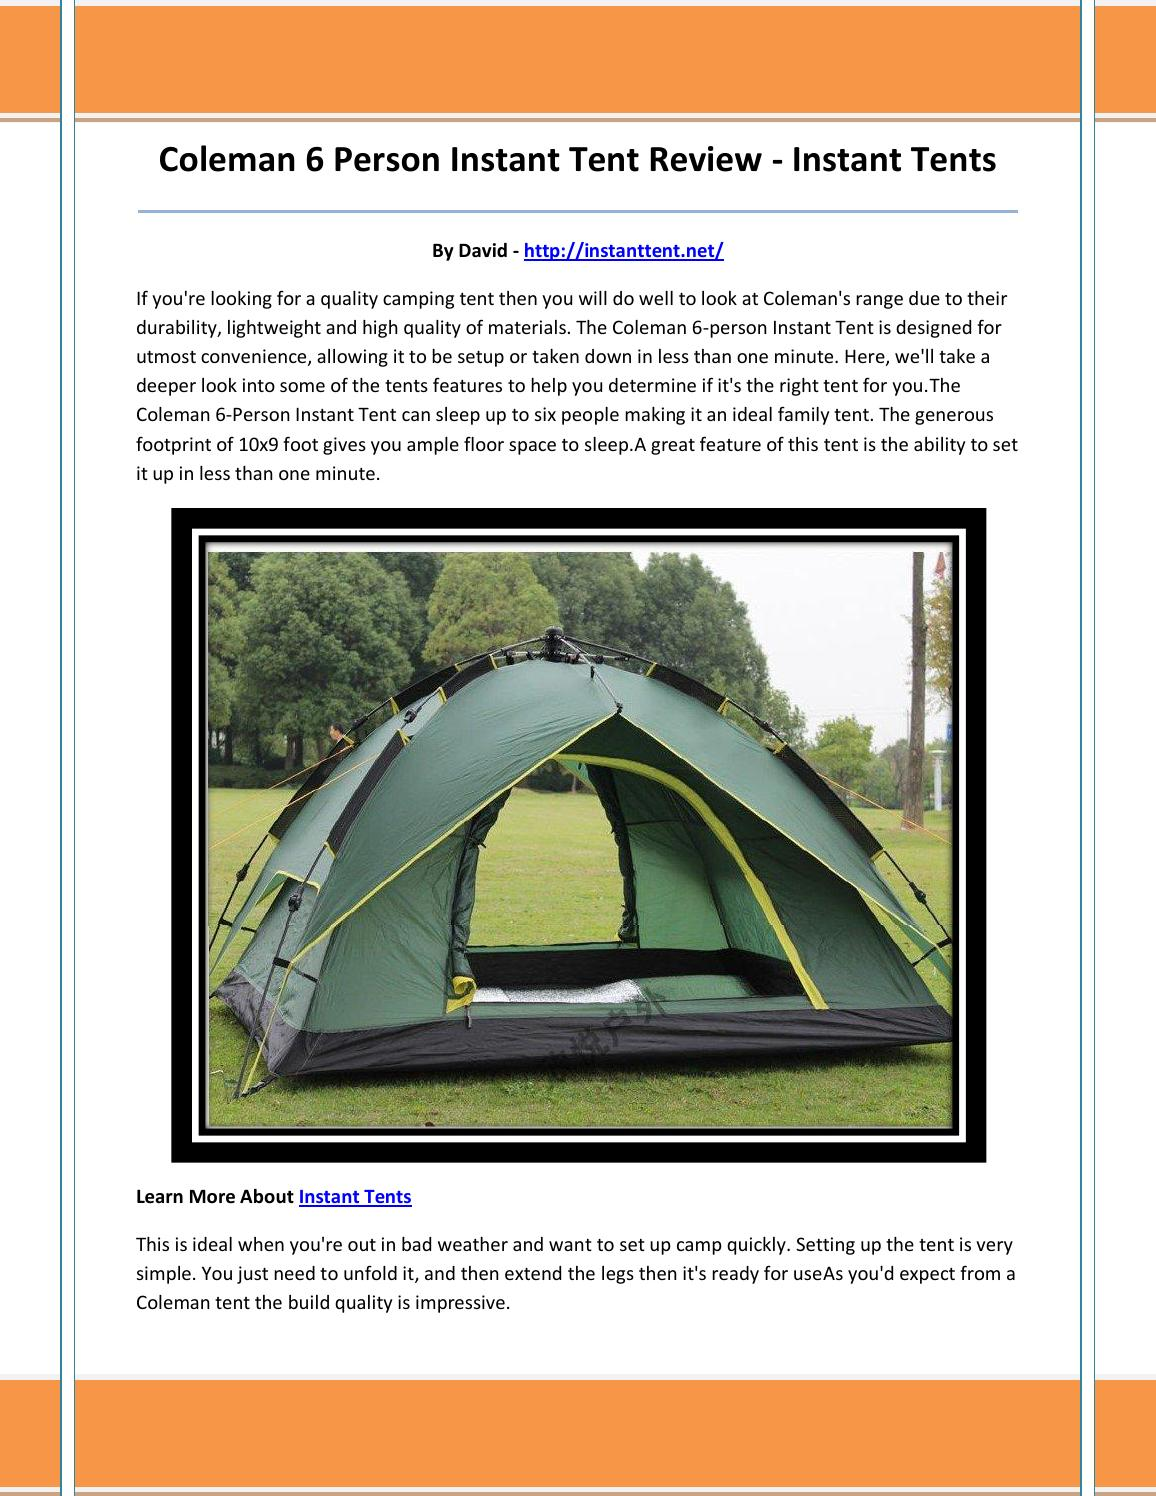 Instant tents by mkklo - issuu